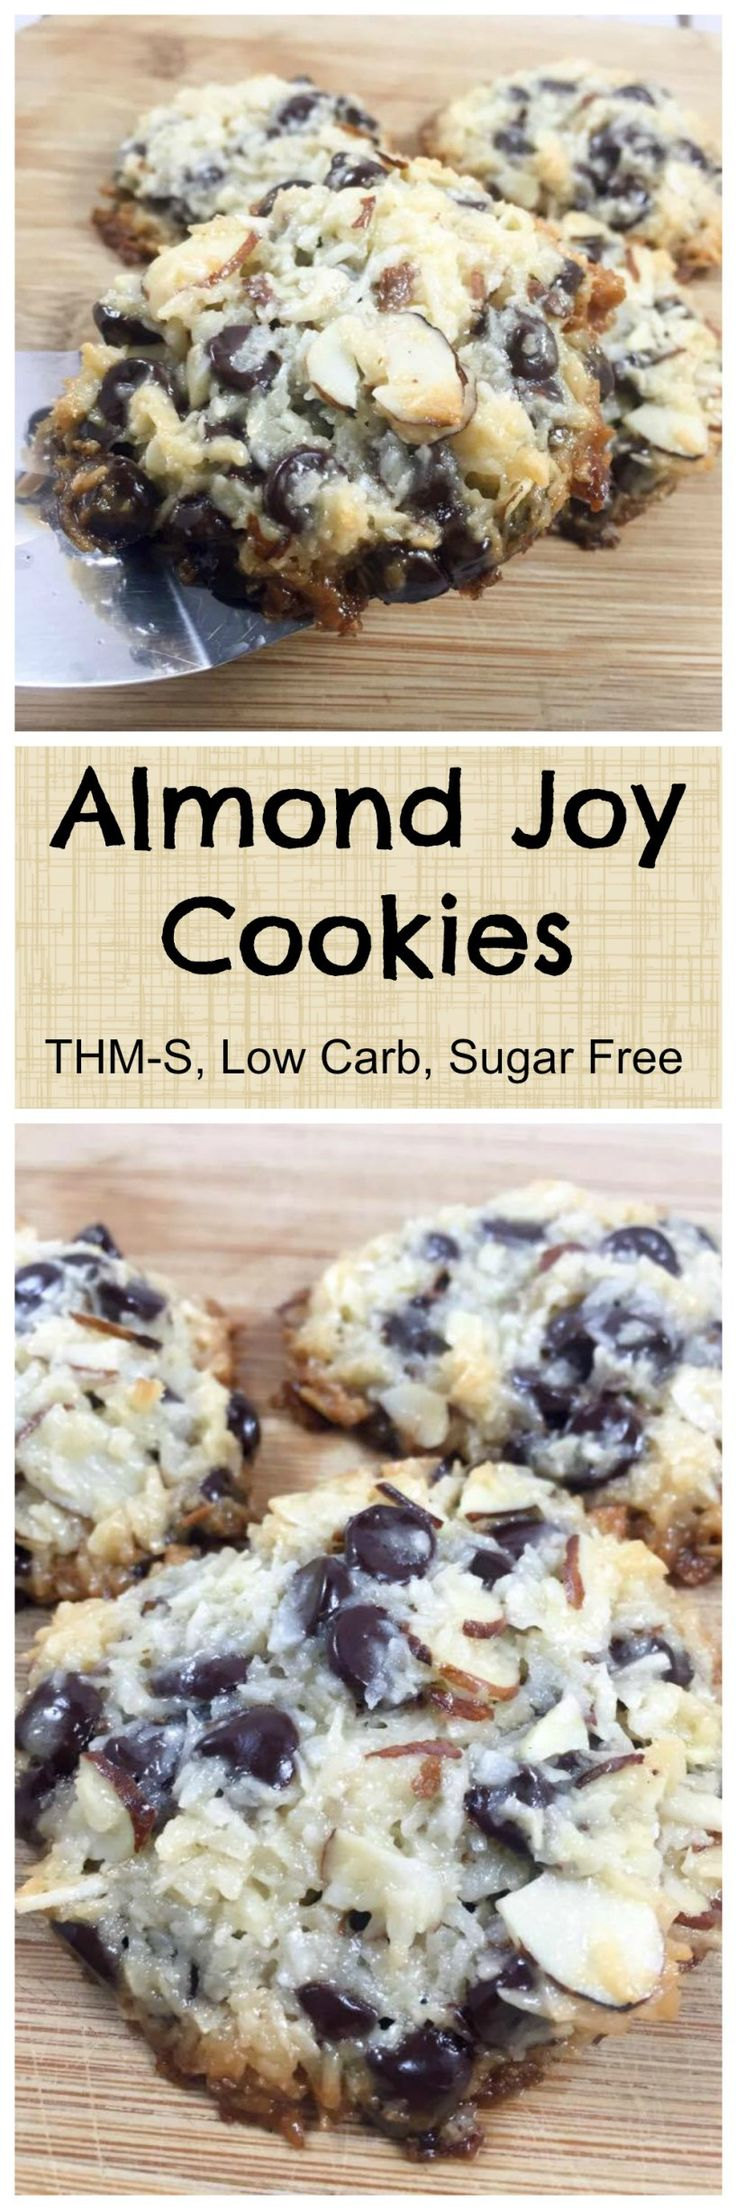 Low Carb, Sugar Free Almond Joy Cookies be sure to use the home made sugar free sweeten condesed milk, not the regular store bought.